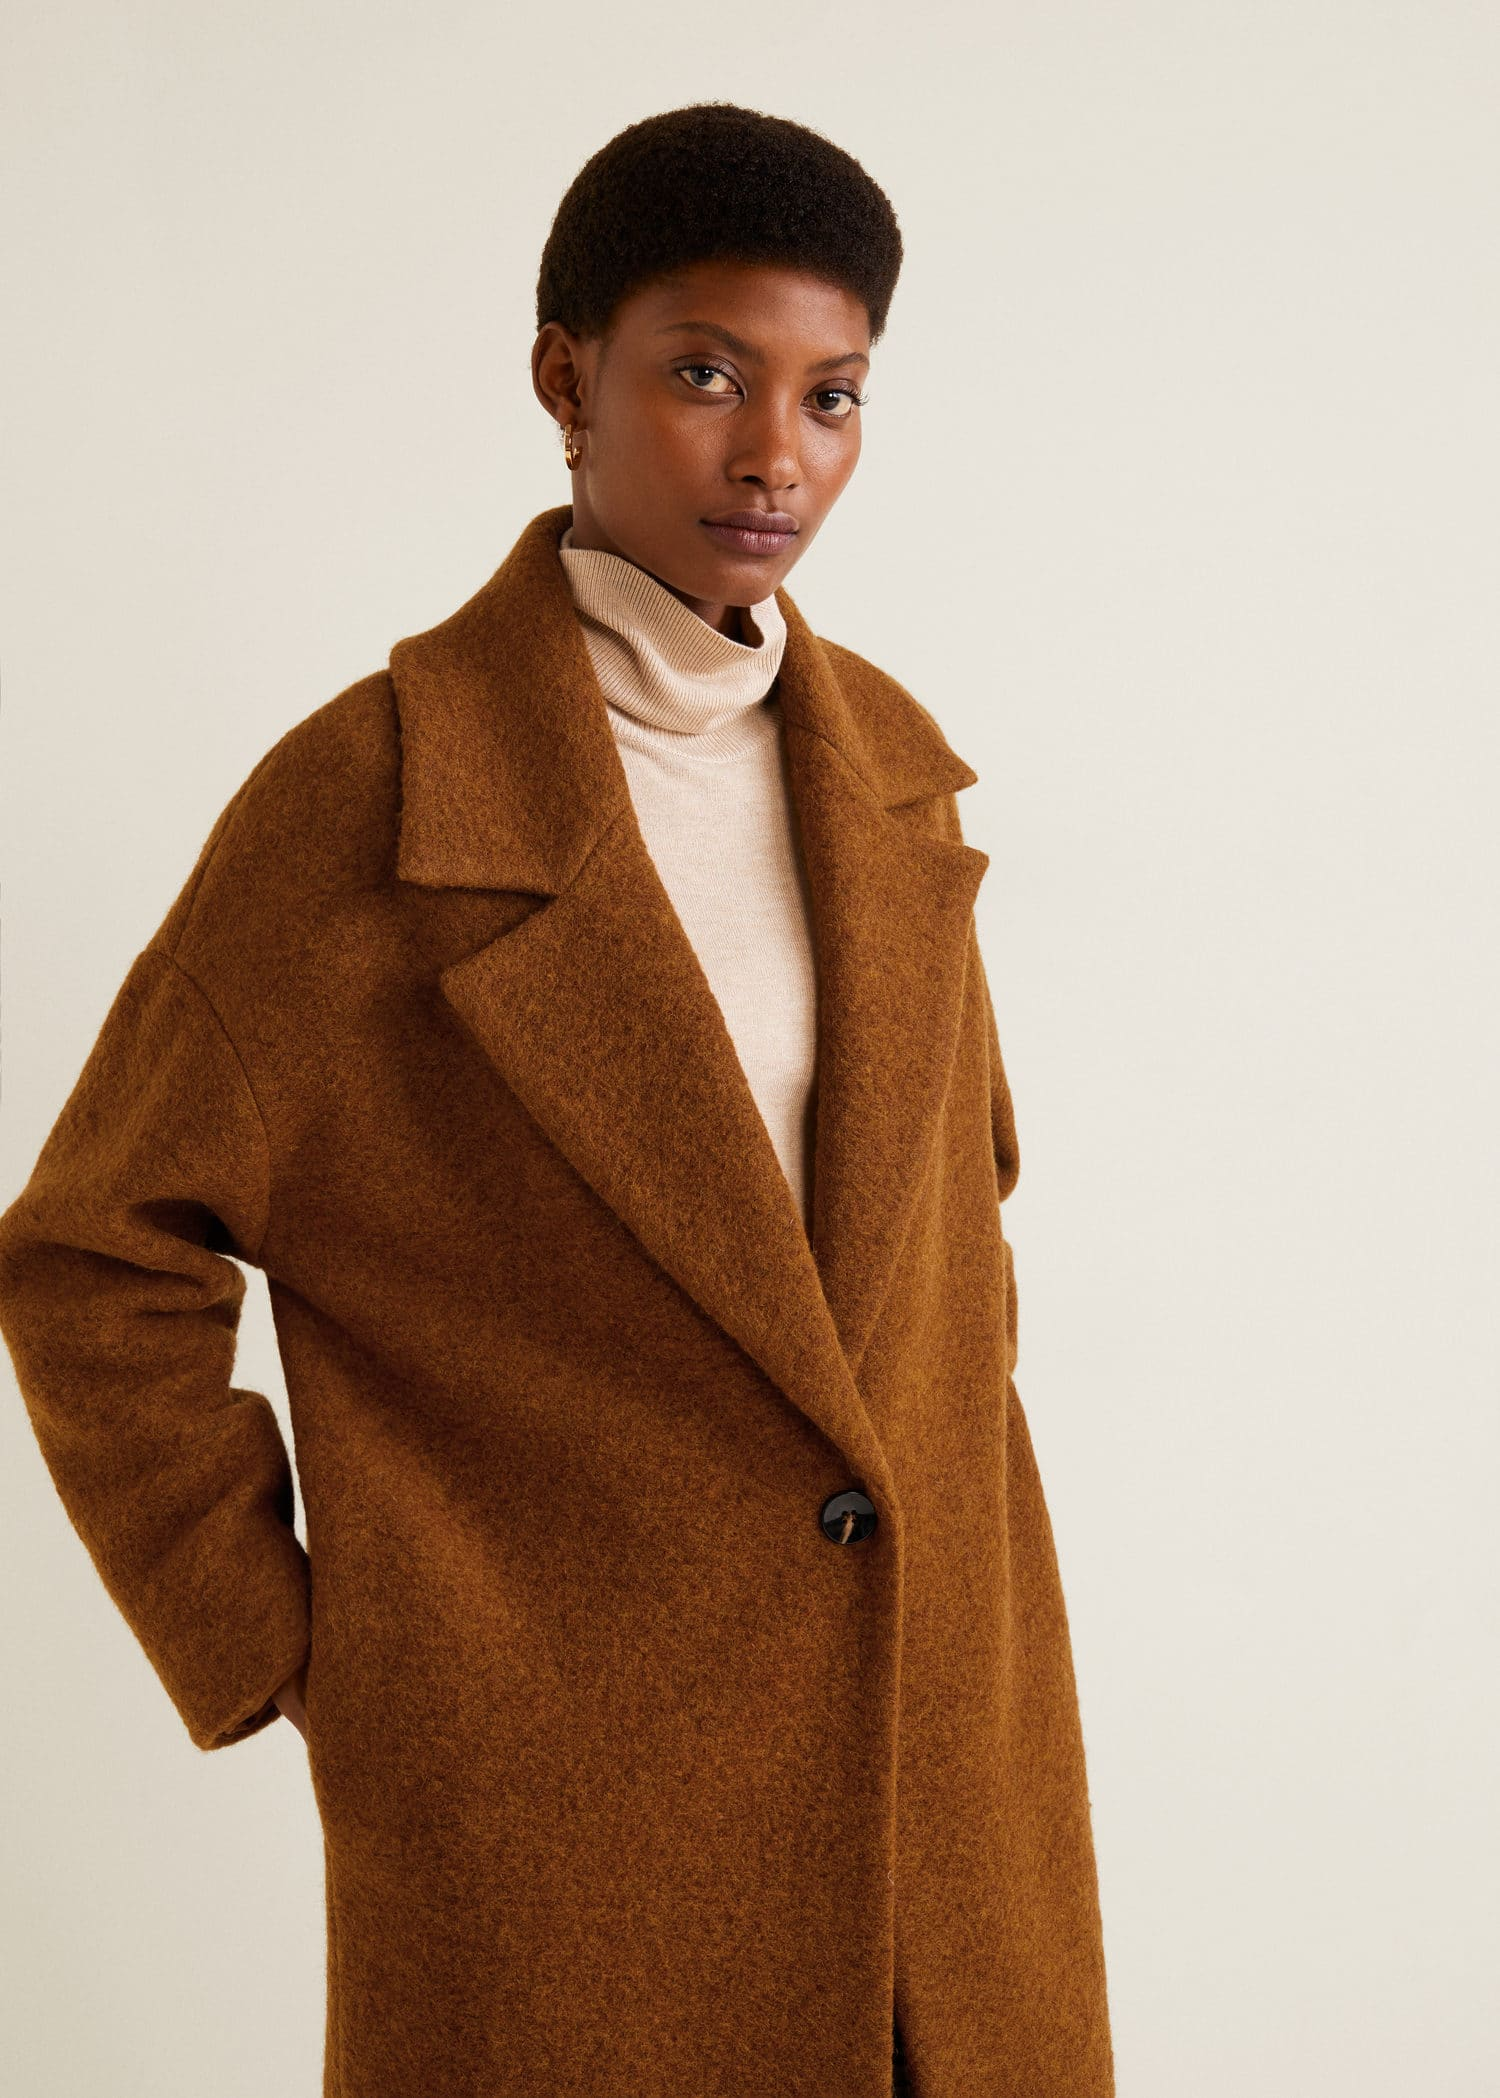 wool coat wool virgin virgin Unstructured virgin coat coat Unstructured Unstructured wool Unstructured PiXuOkZ